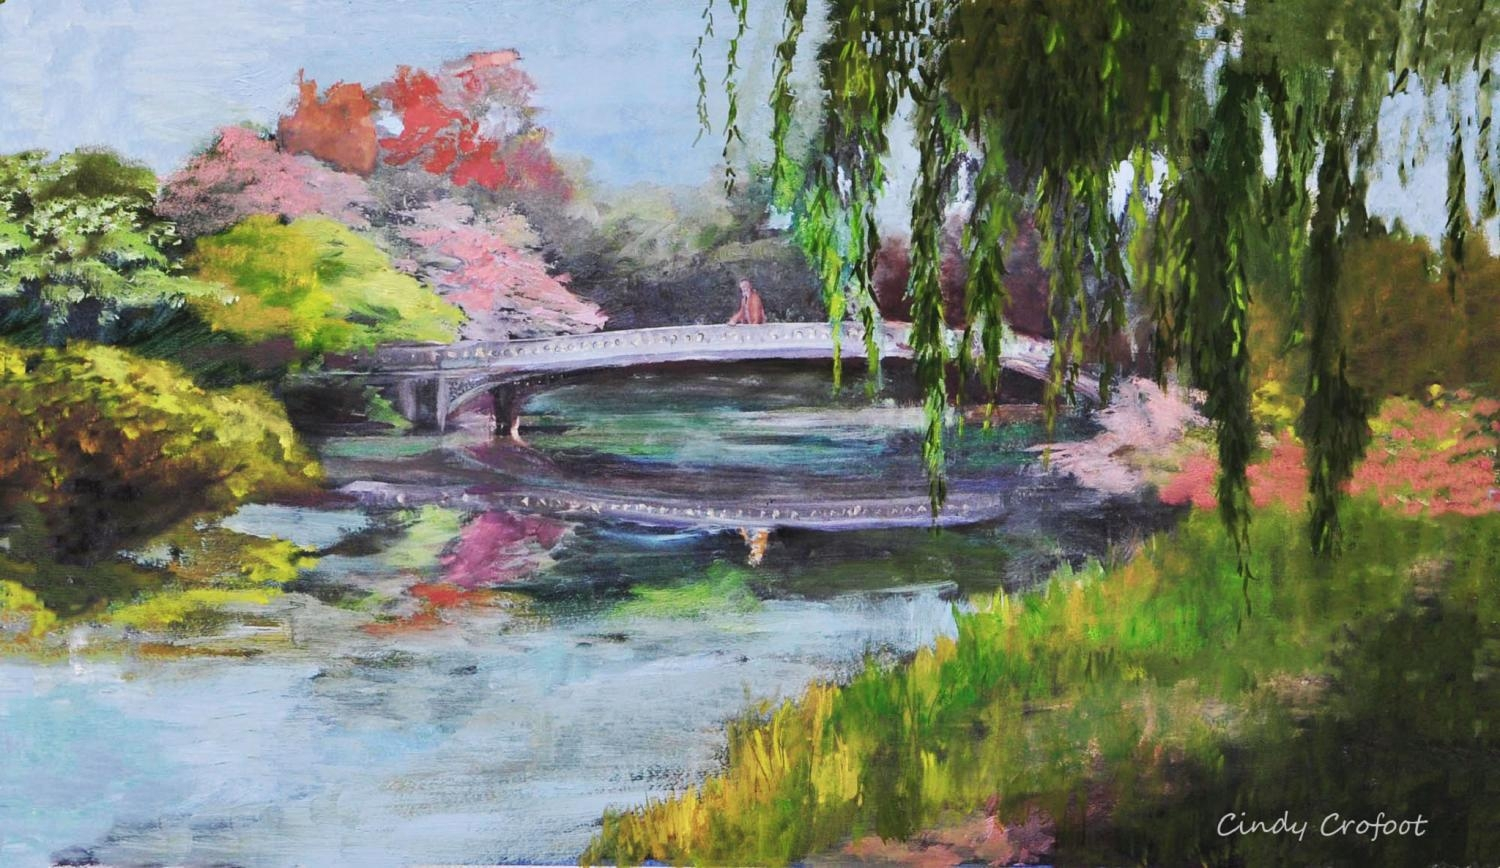 """Central Park's Bow Bridge in Spring, 1894"" by Cindy Crofoot"